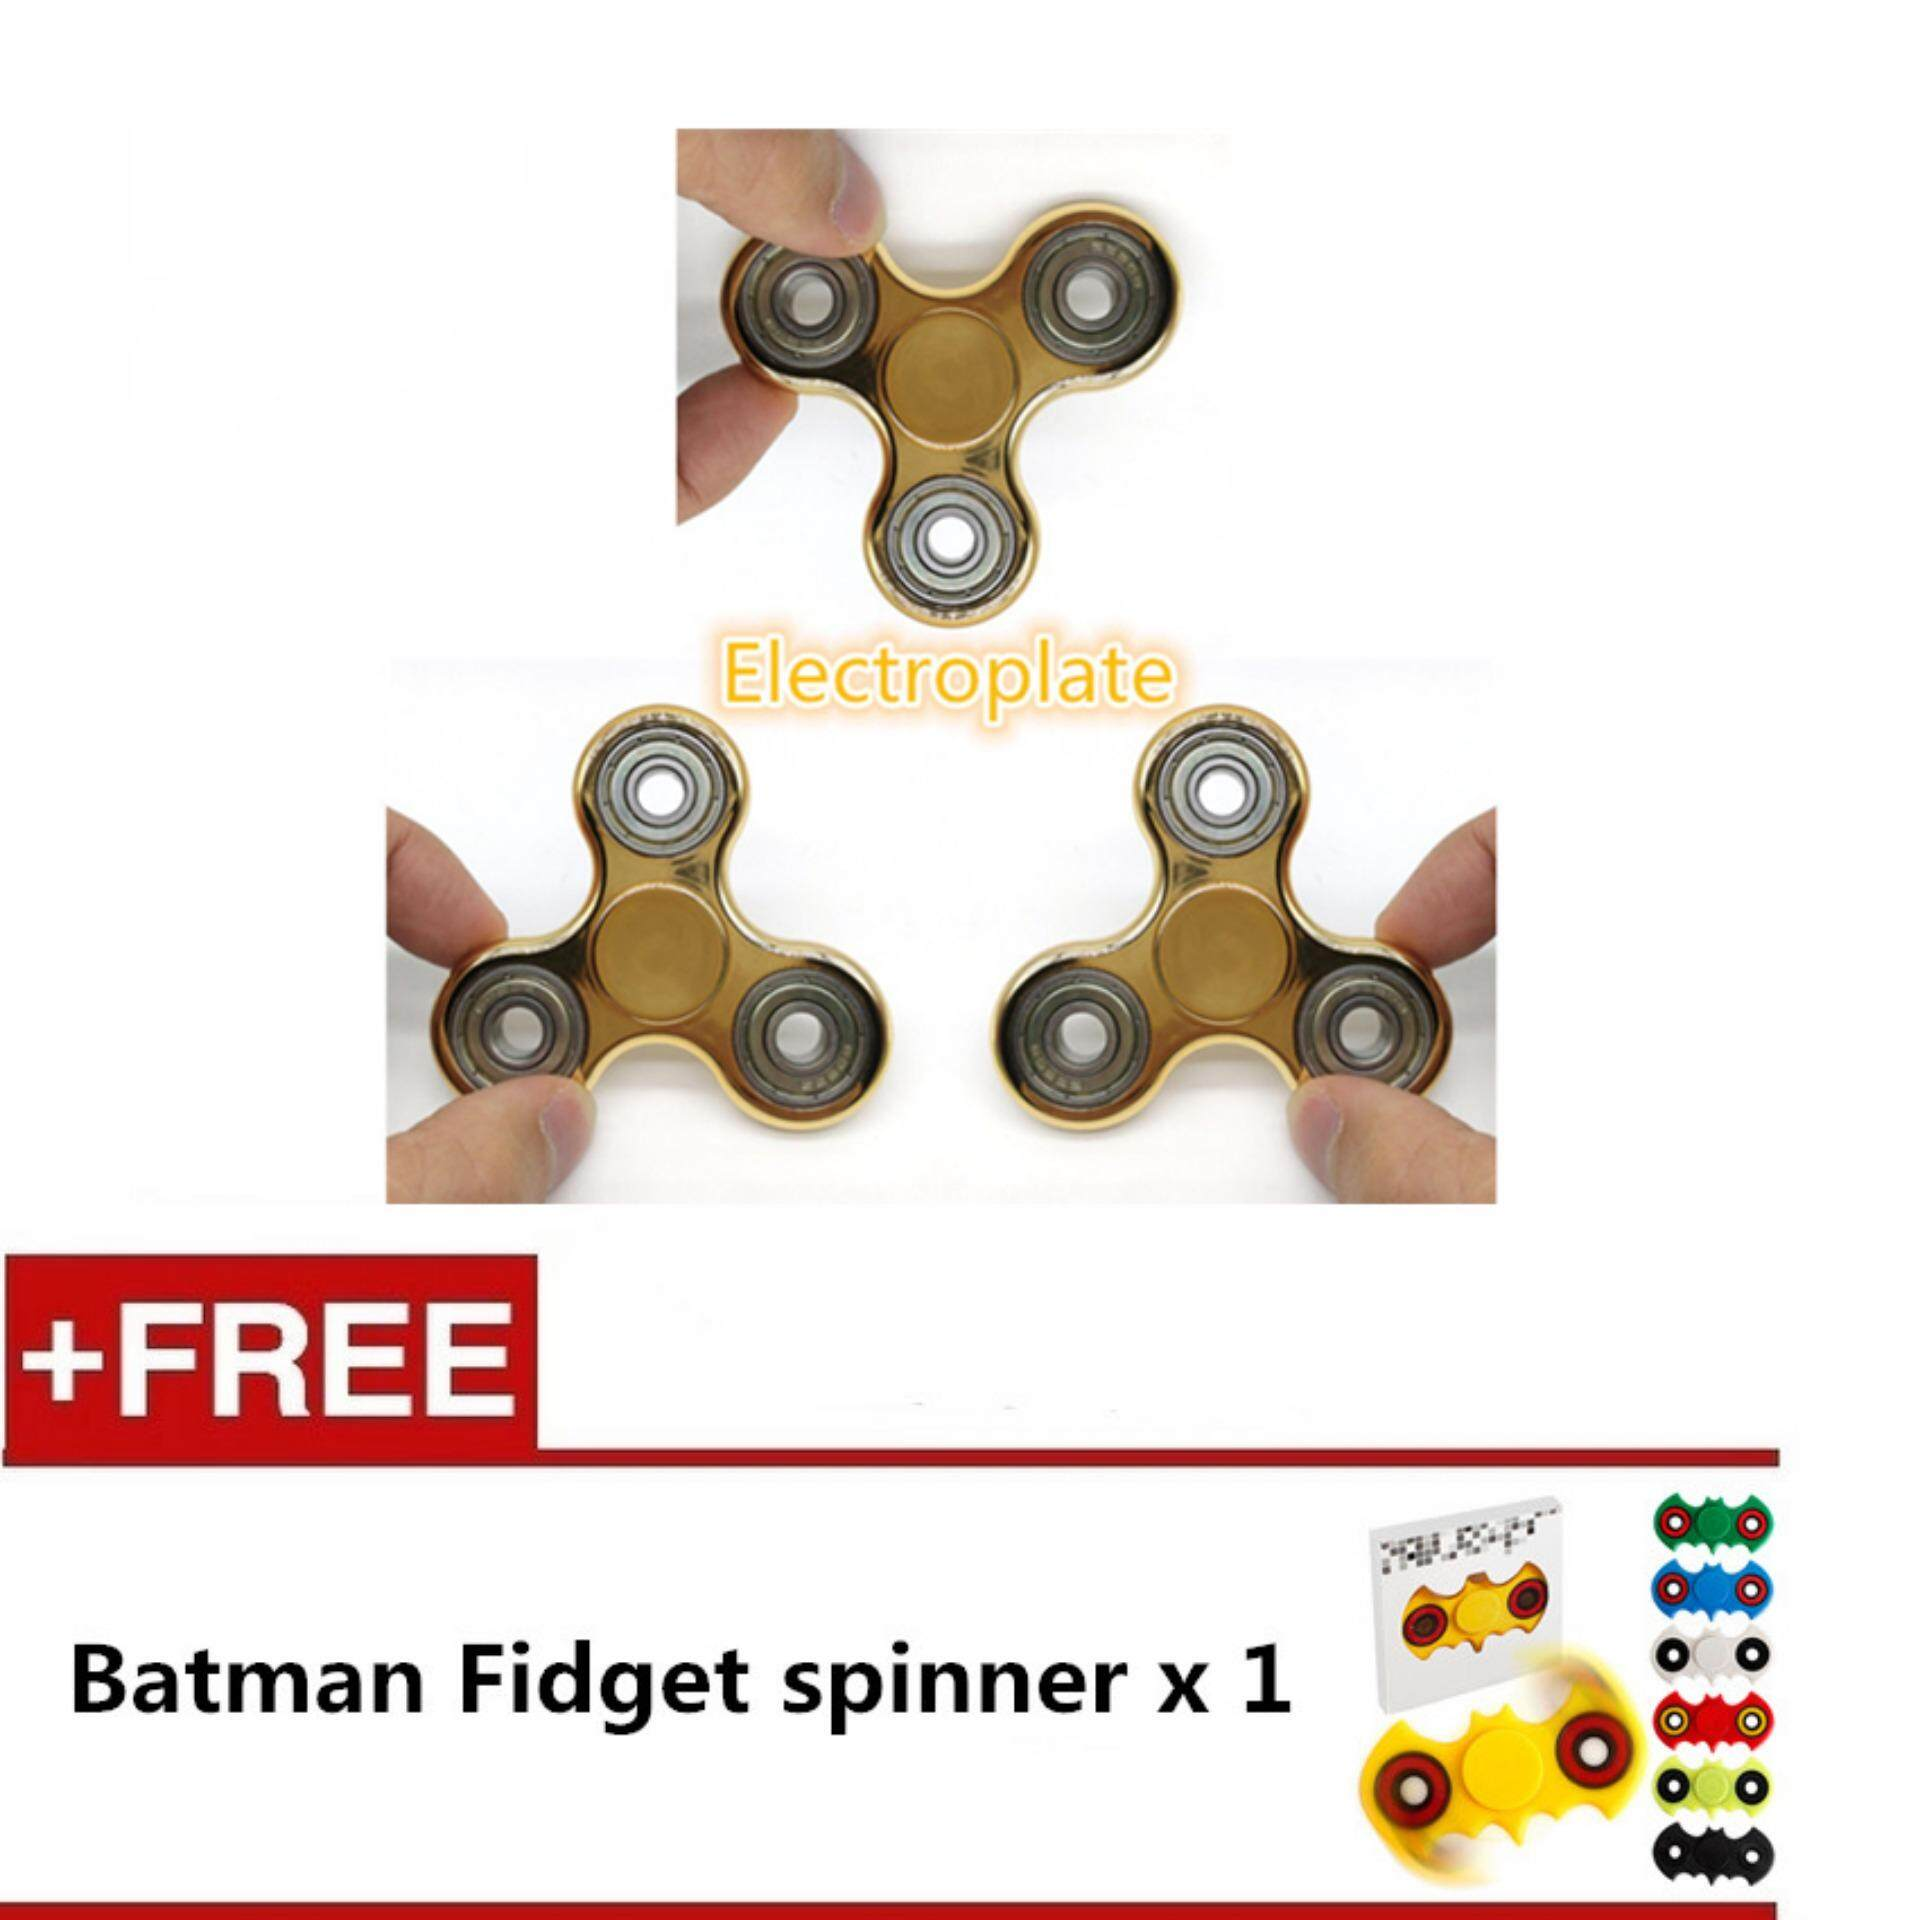 Fidget Spinner For Sale Wind Spinners Online Brands Prices Toys Hand Batman Aaa Sun Gold Plating High Quality Edc Autism And Adhd Rotation